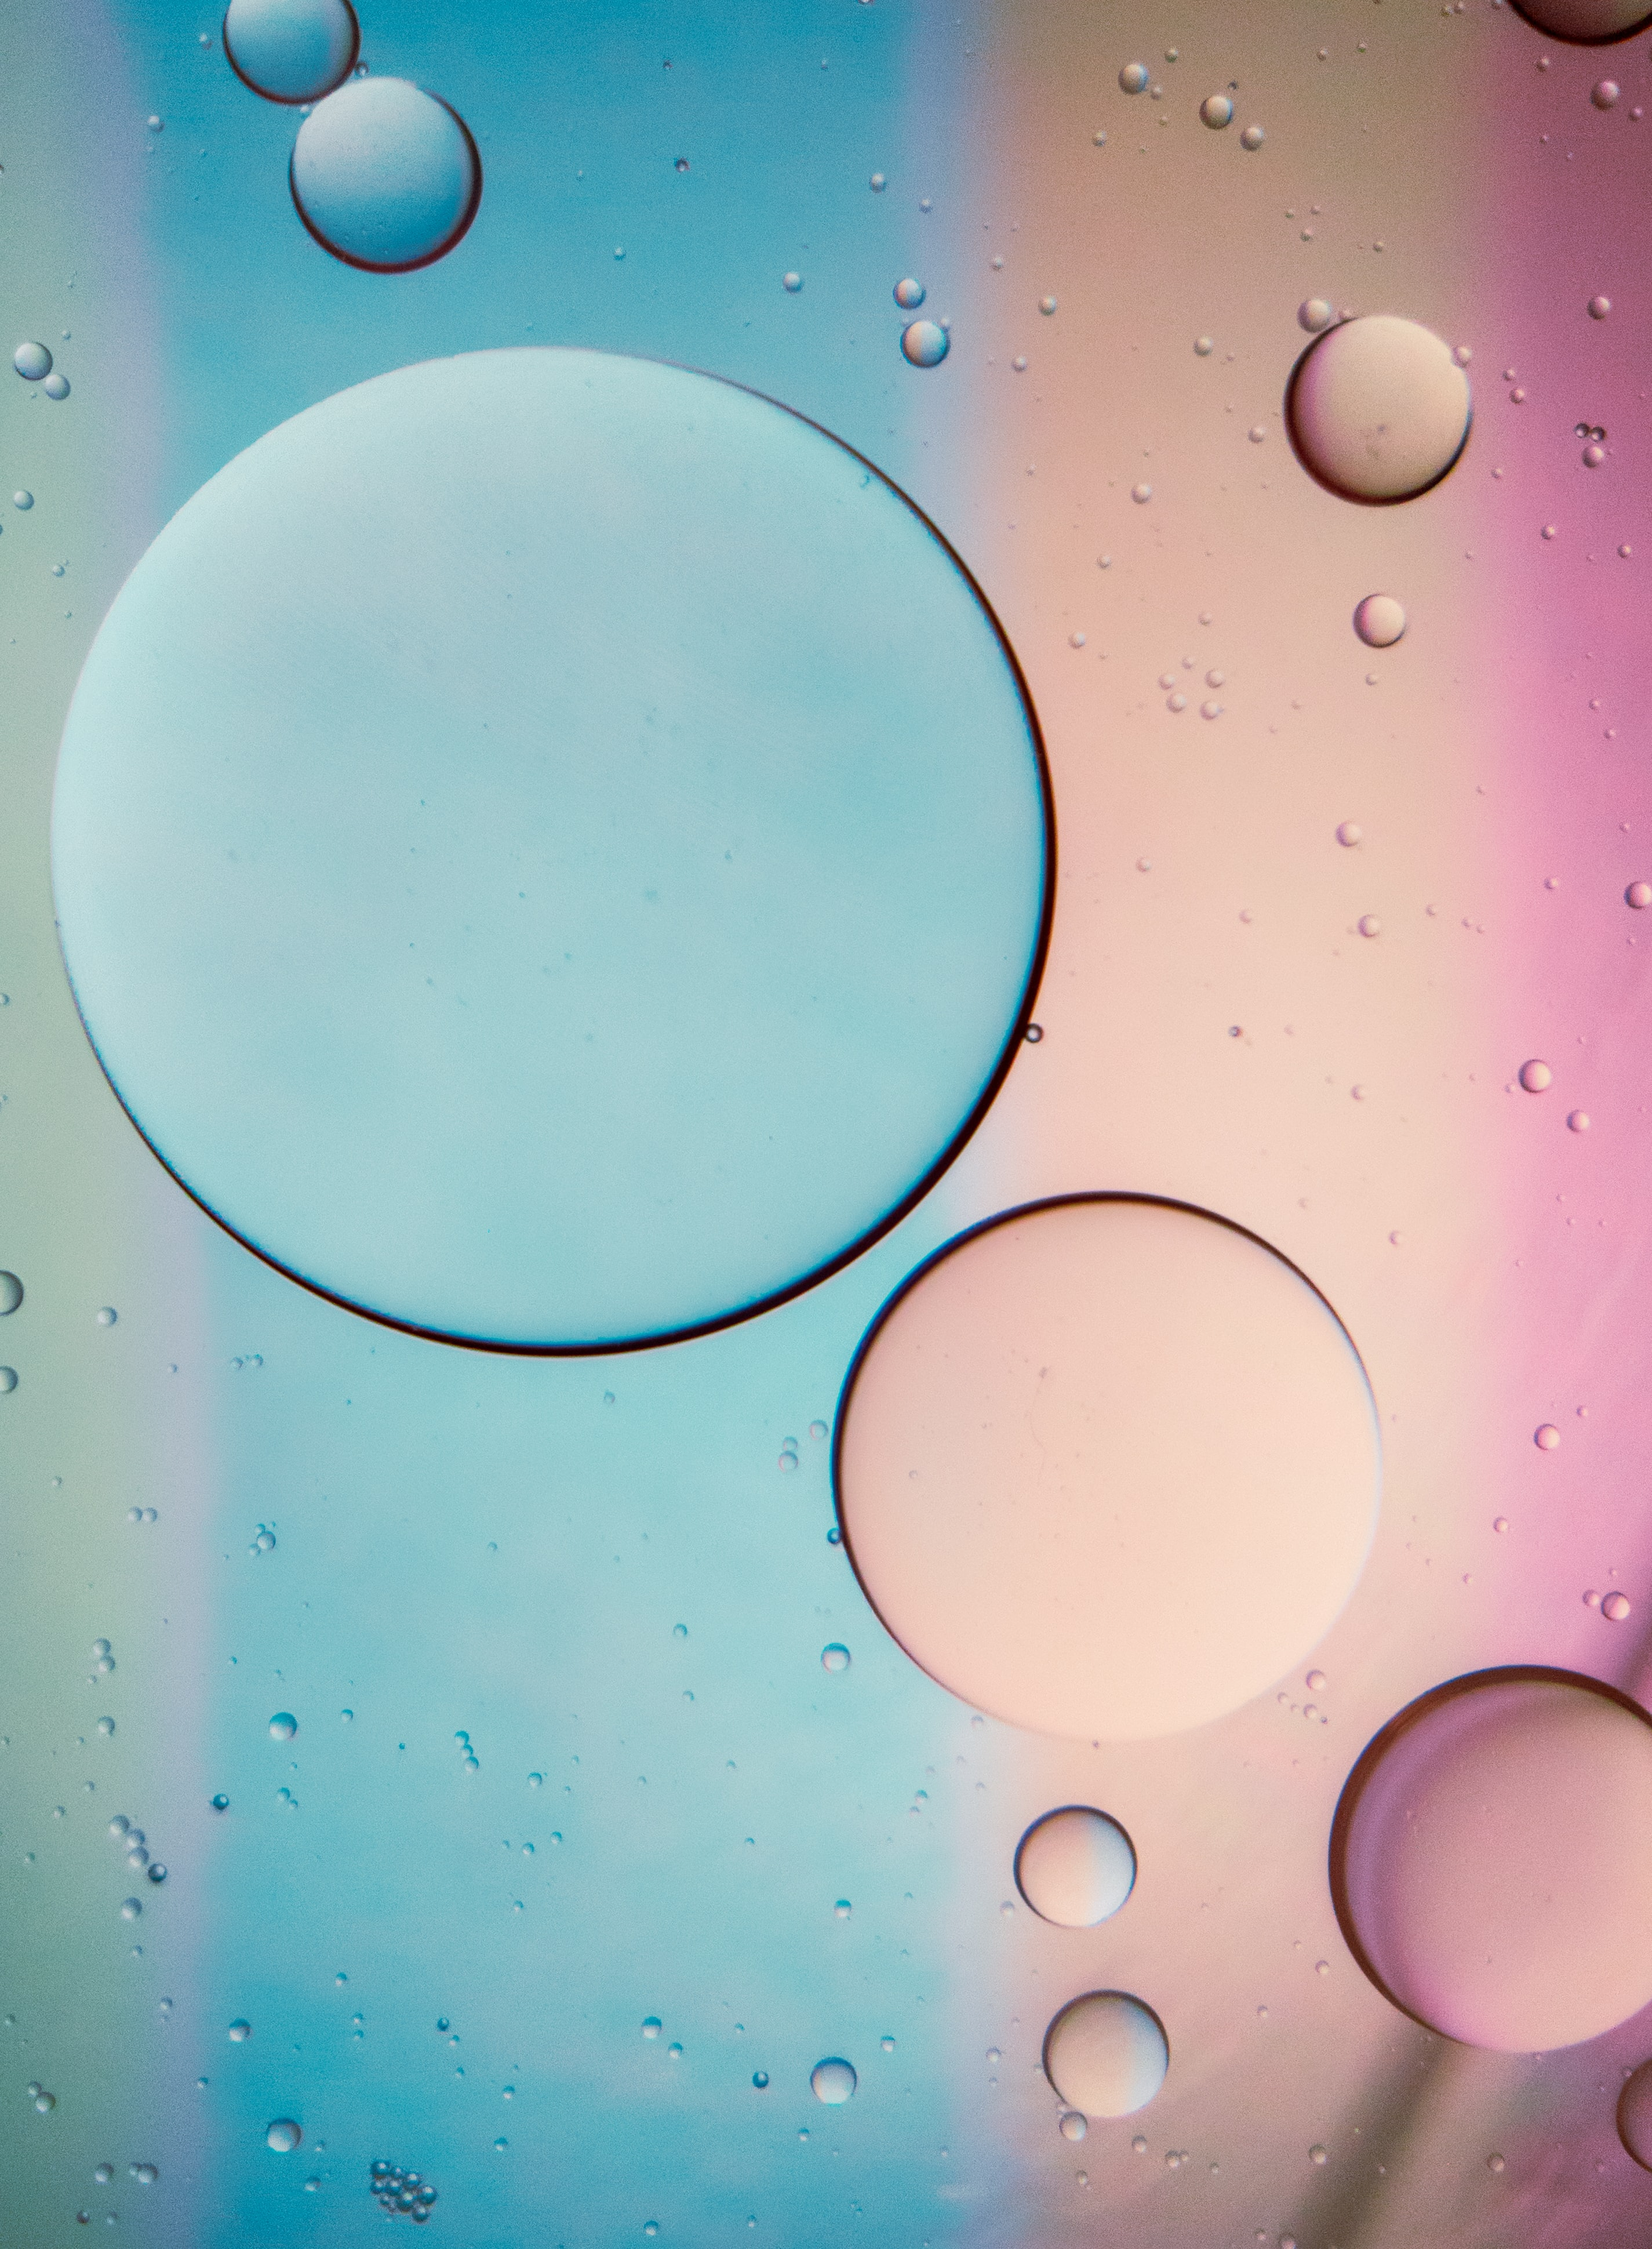 55861 download wallpaper Macro, Butter, Oil, Liquid, Pink, Bubbles screensavers and pictures for free